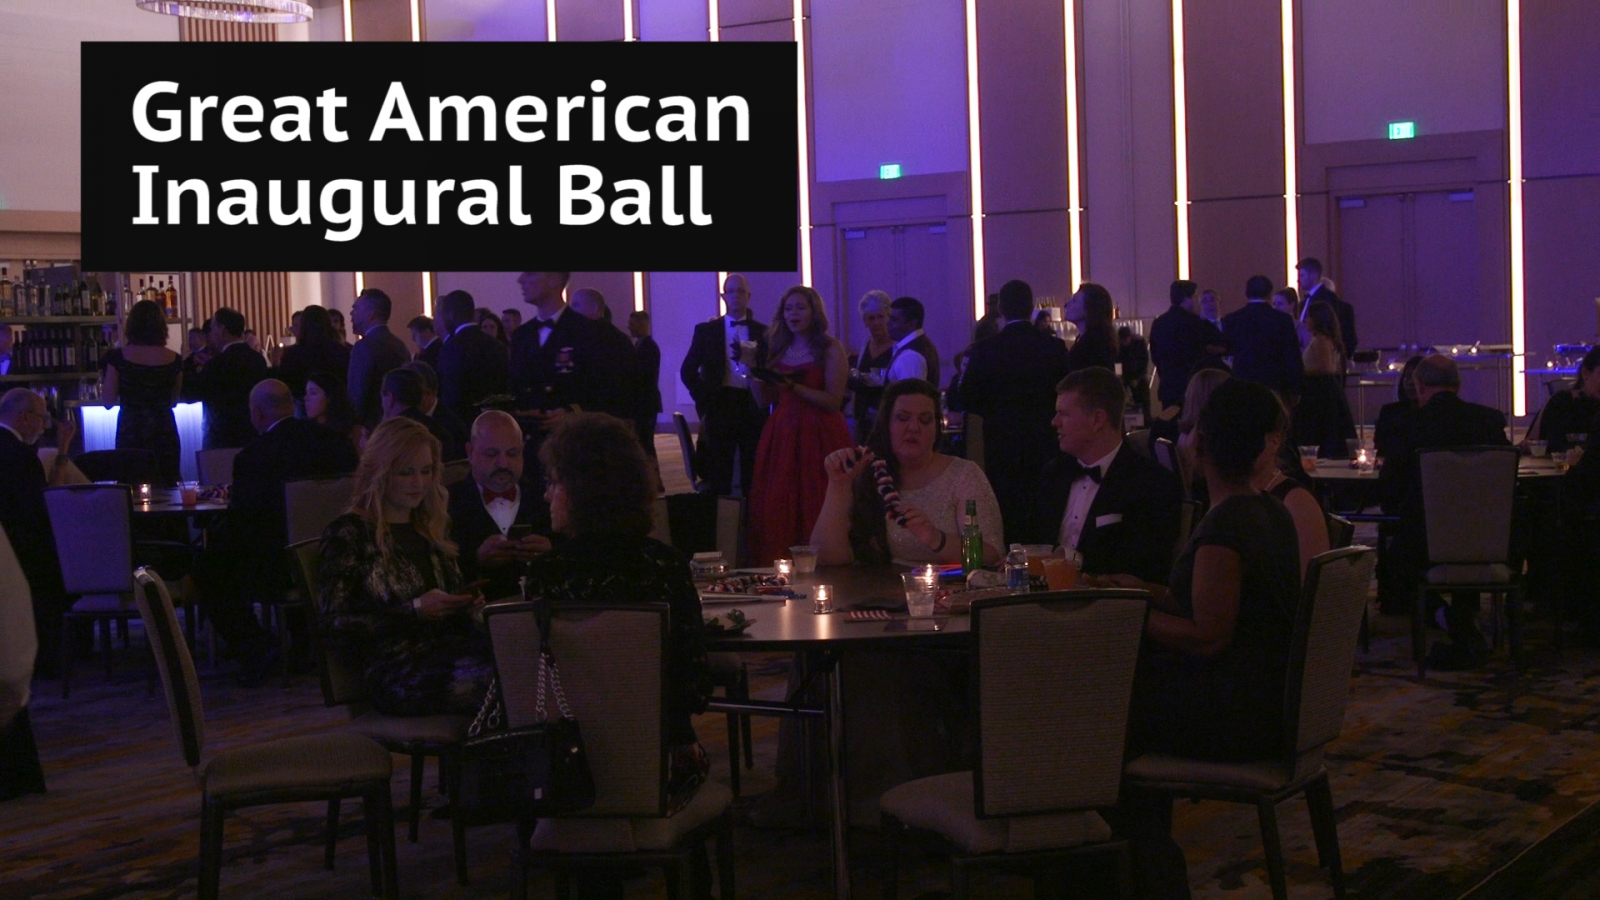 Great American Inaugural Ball: Donald Trump supporters celebrate in Washington DC